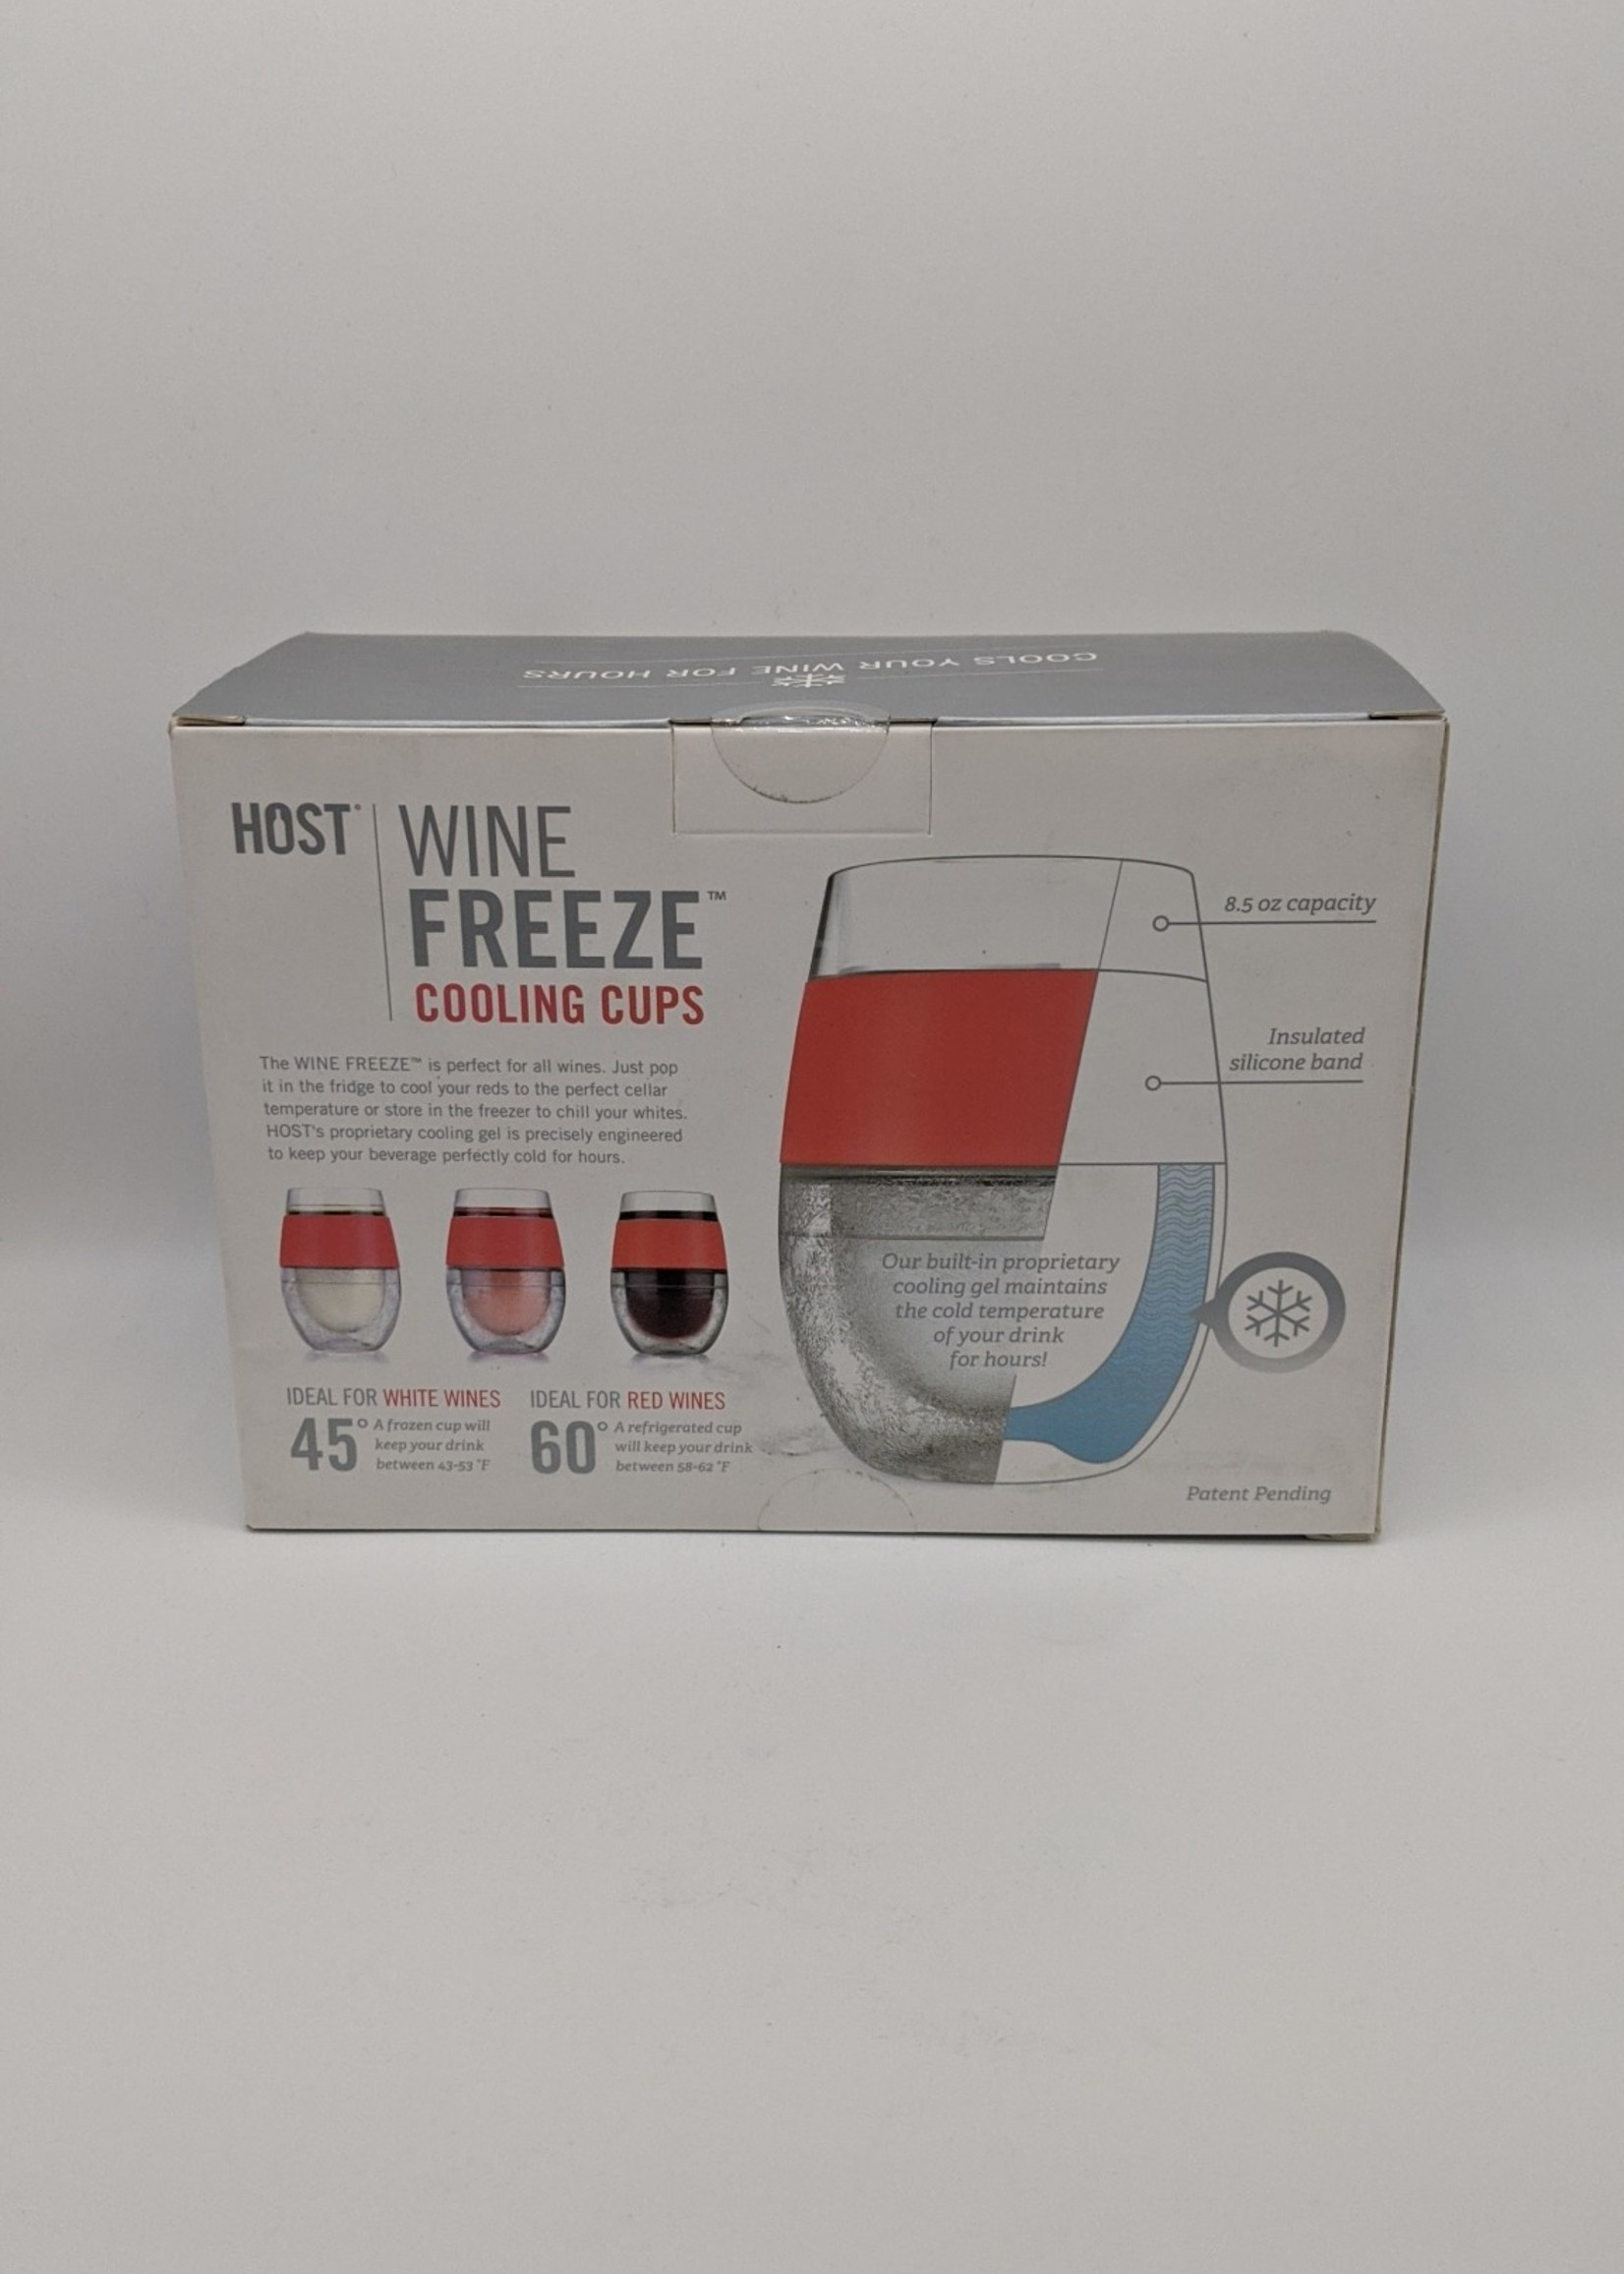 HOST FREEZE COOL WINE TWO PACK CORAL